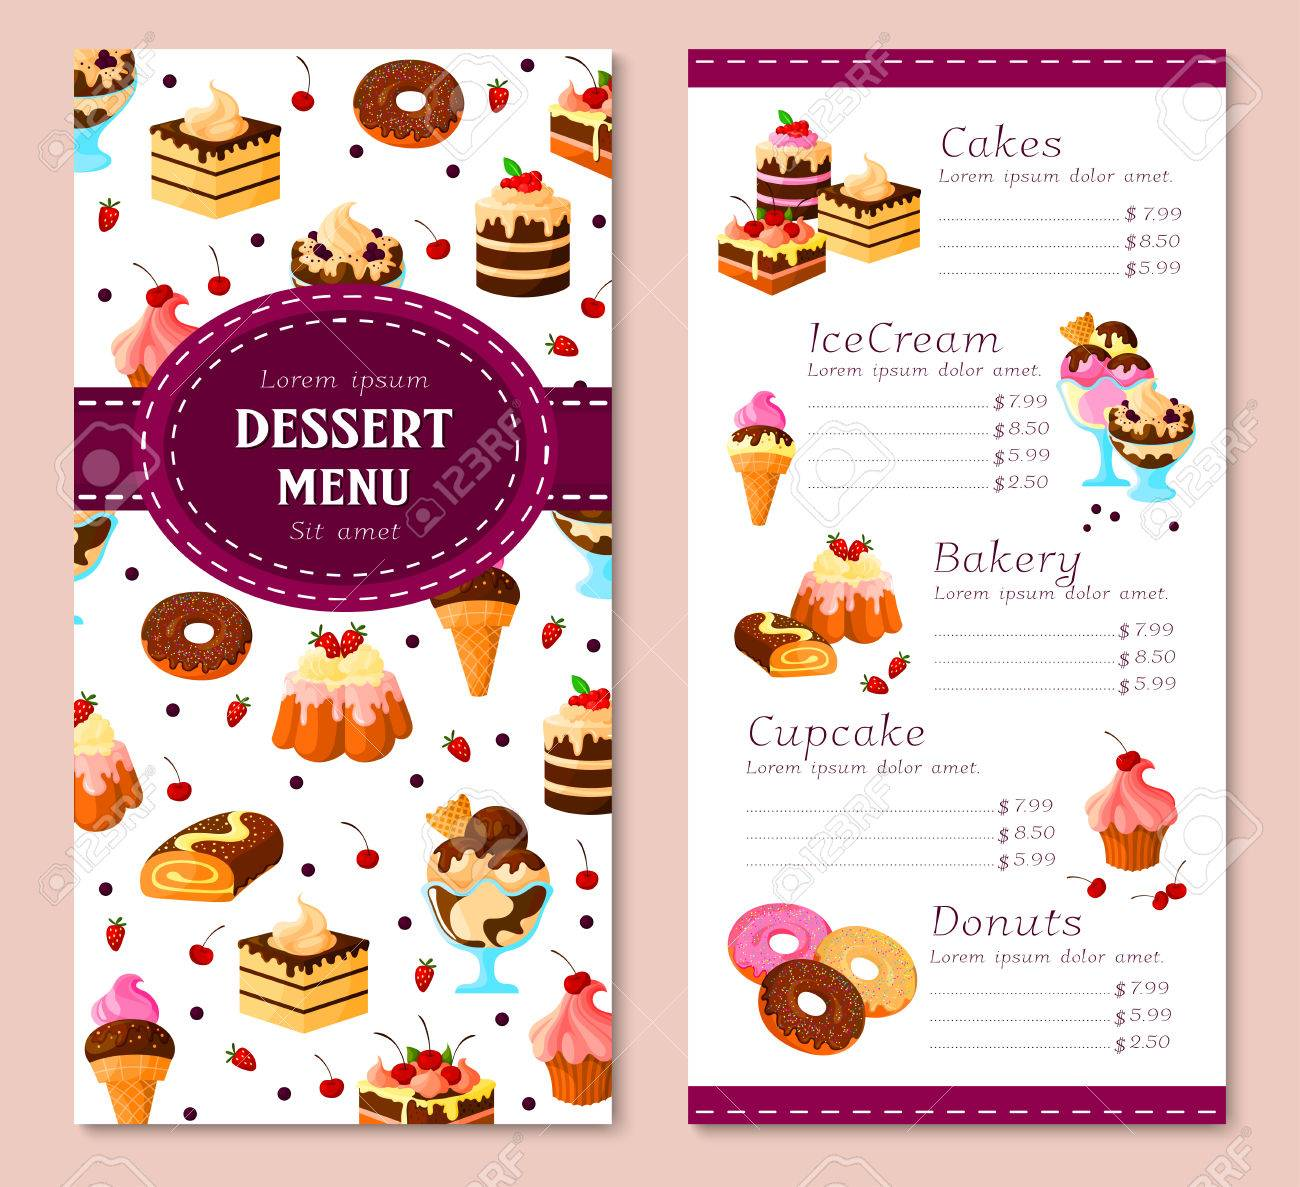 vector menu template for bakery desserts cakes royalty free cliparts